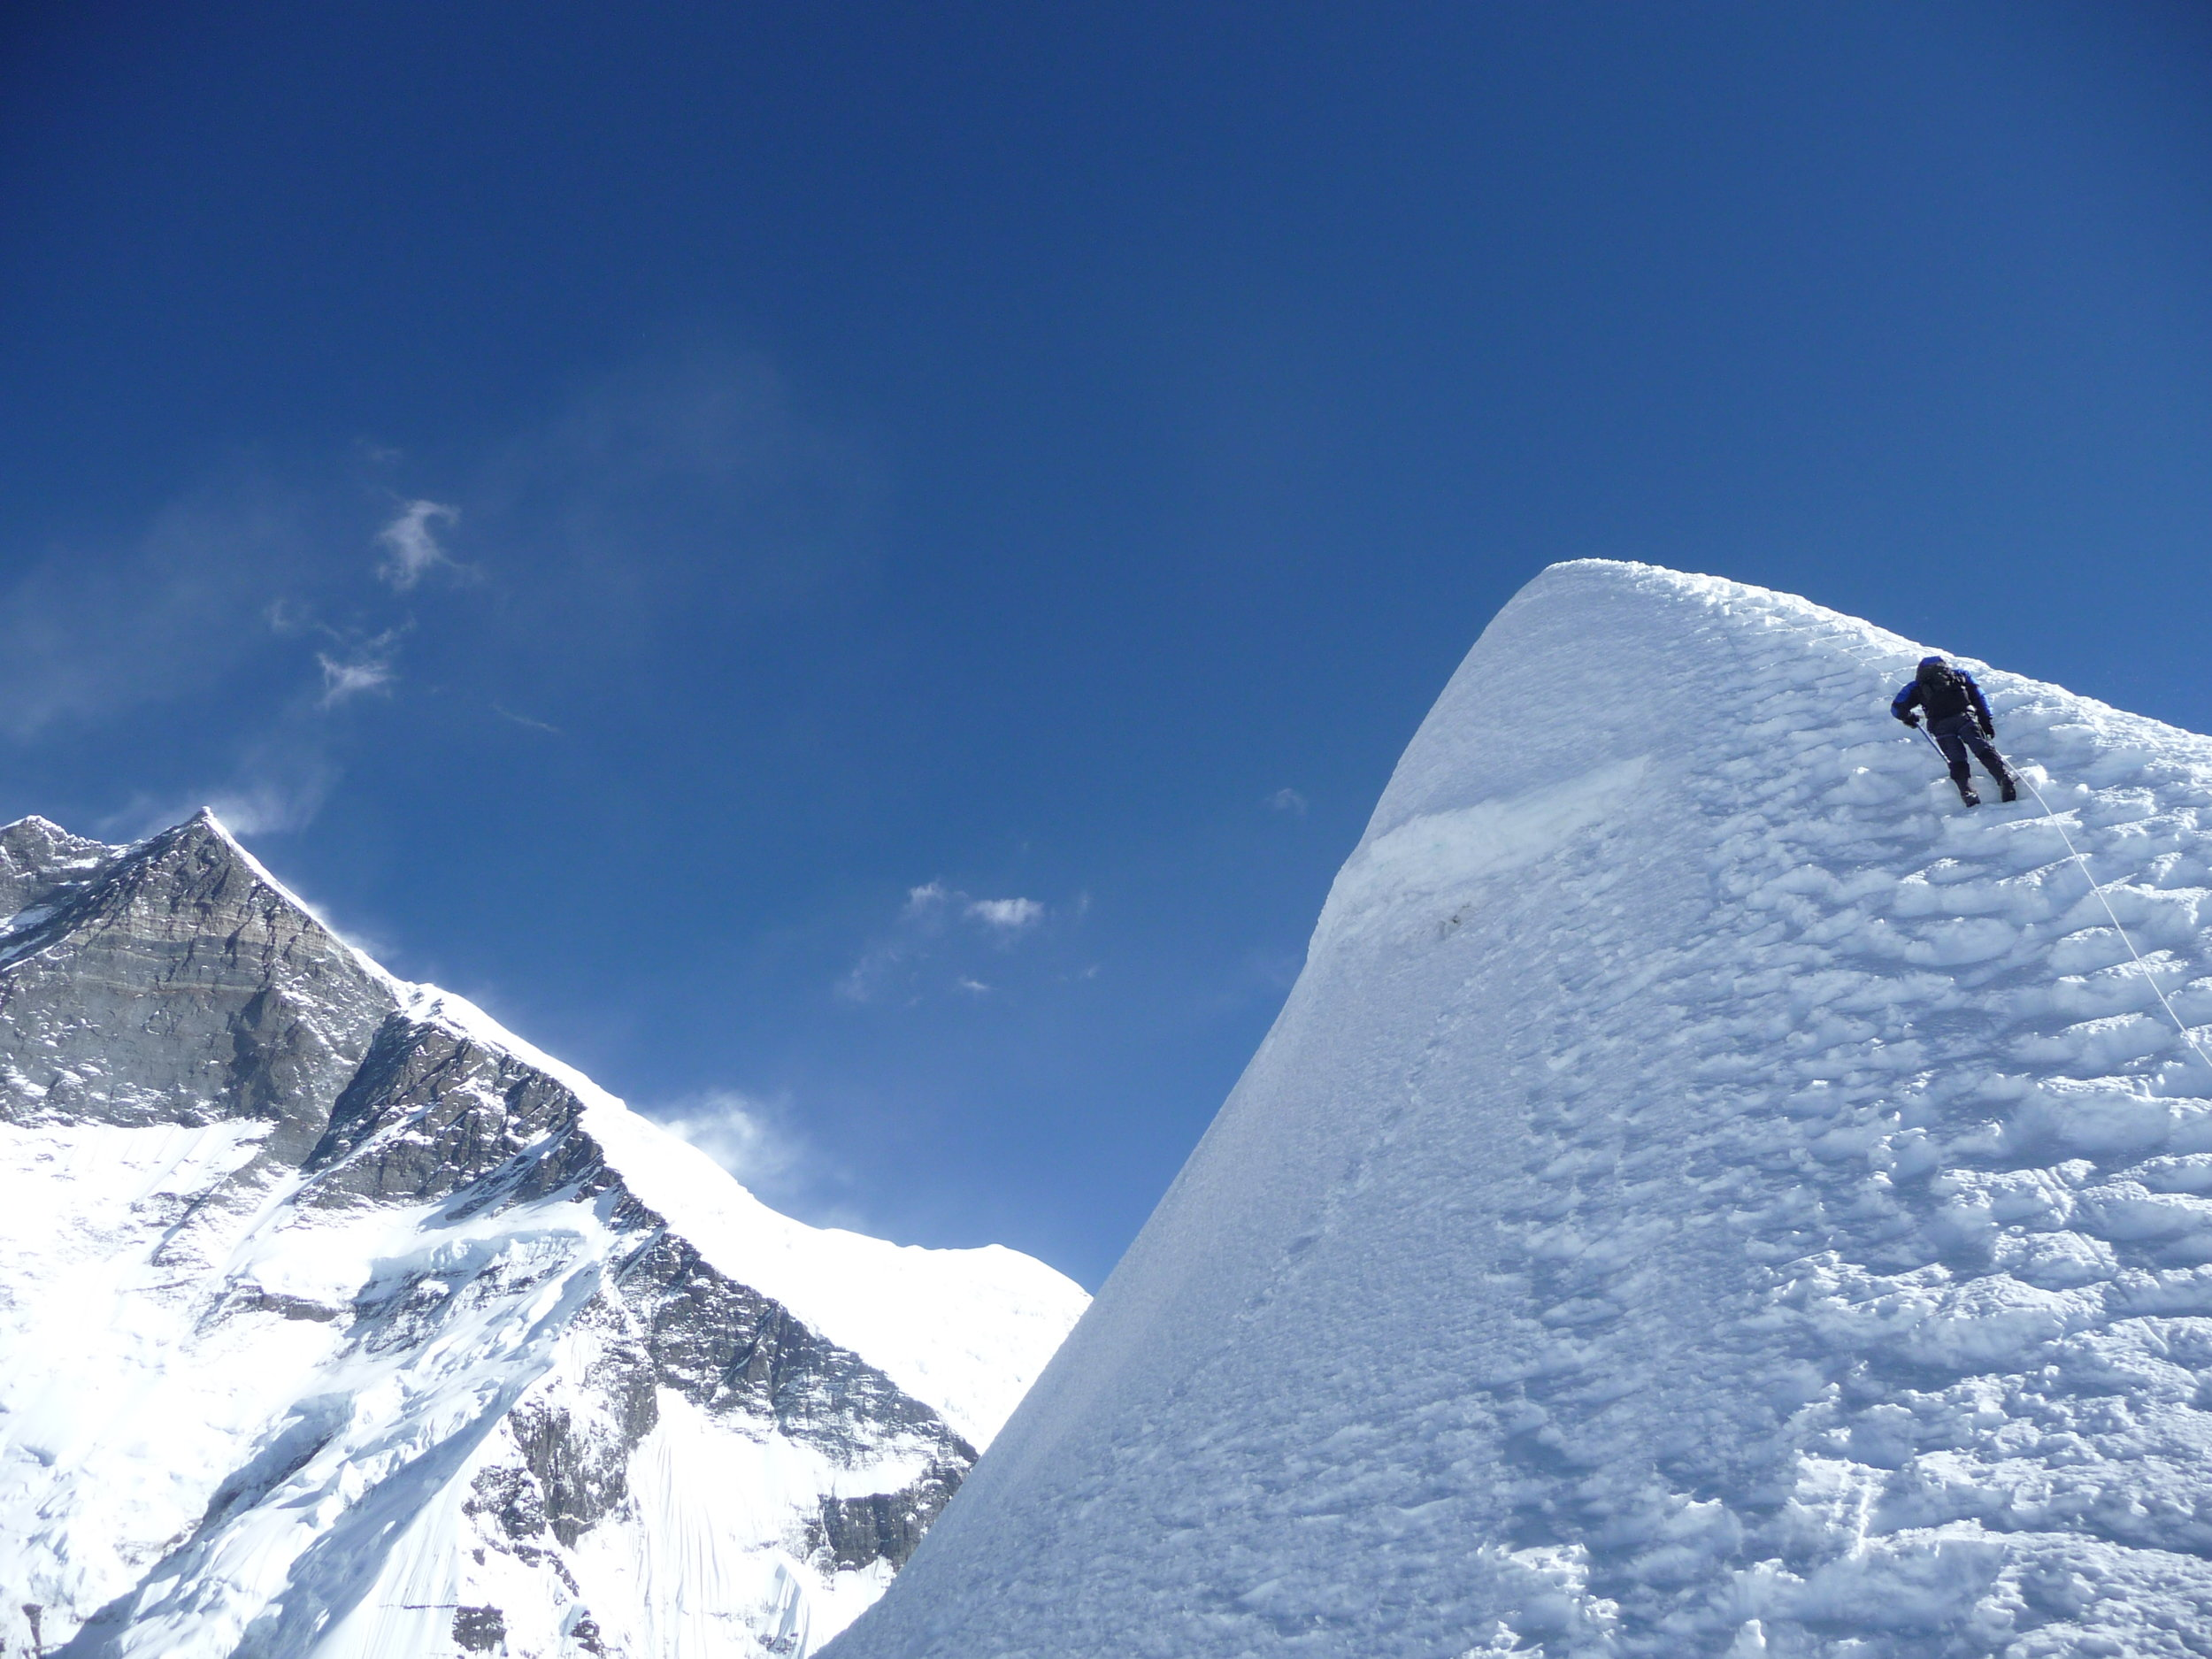 Our lead climber about to Summit Island Peak (6189m), Everest Region, photo by Paul Swettenham